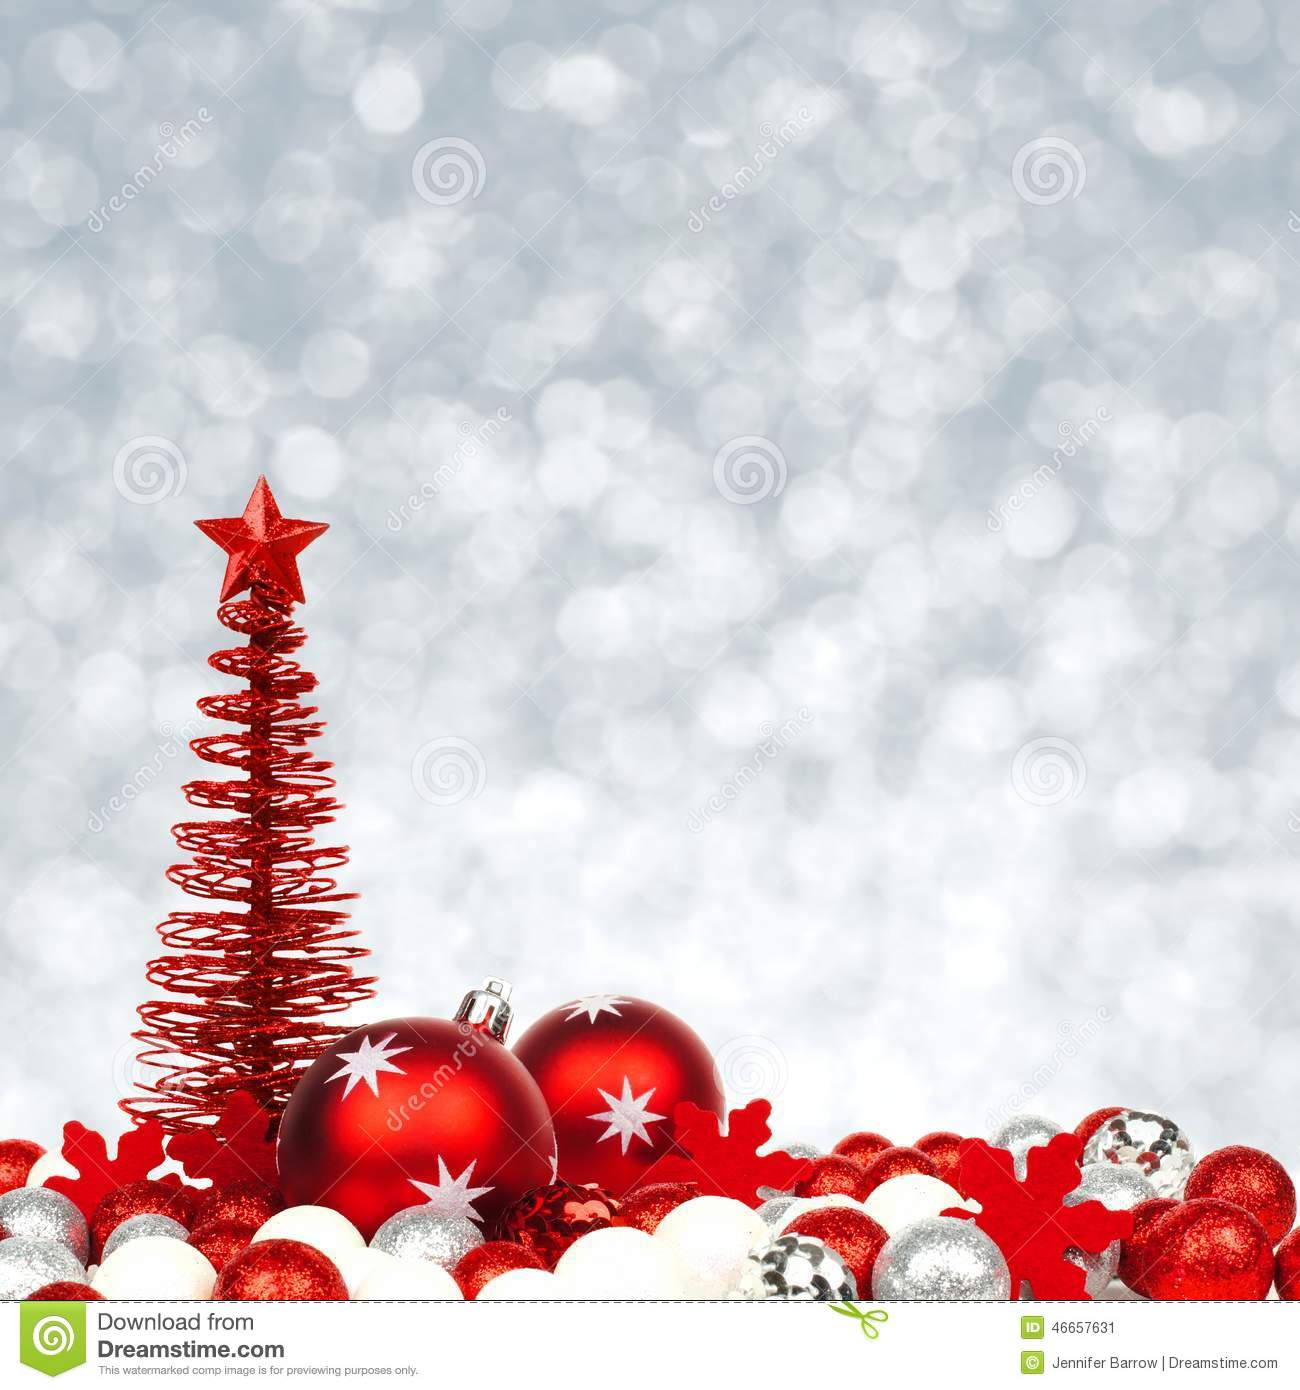 Christmas Ornaments With Twinkling Background Stock Image ...